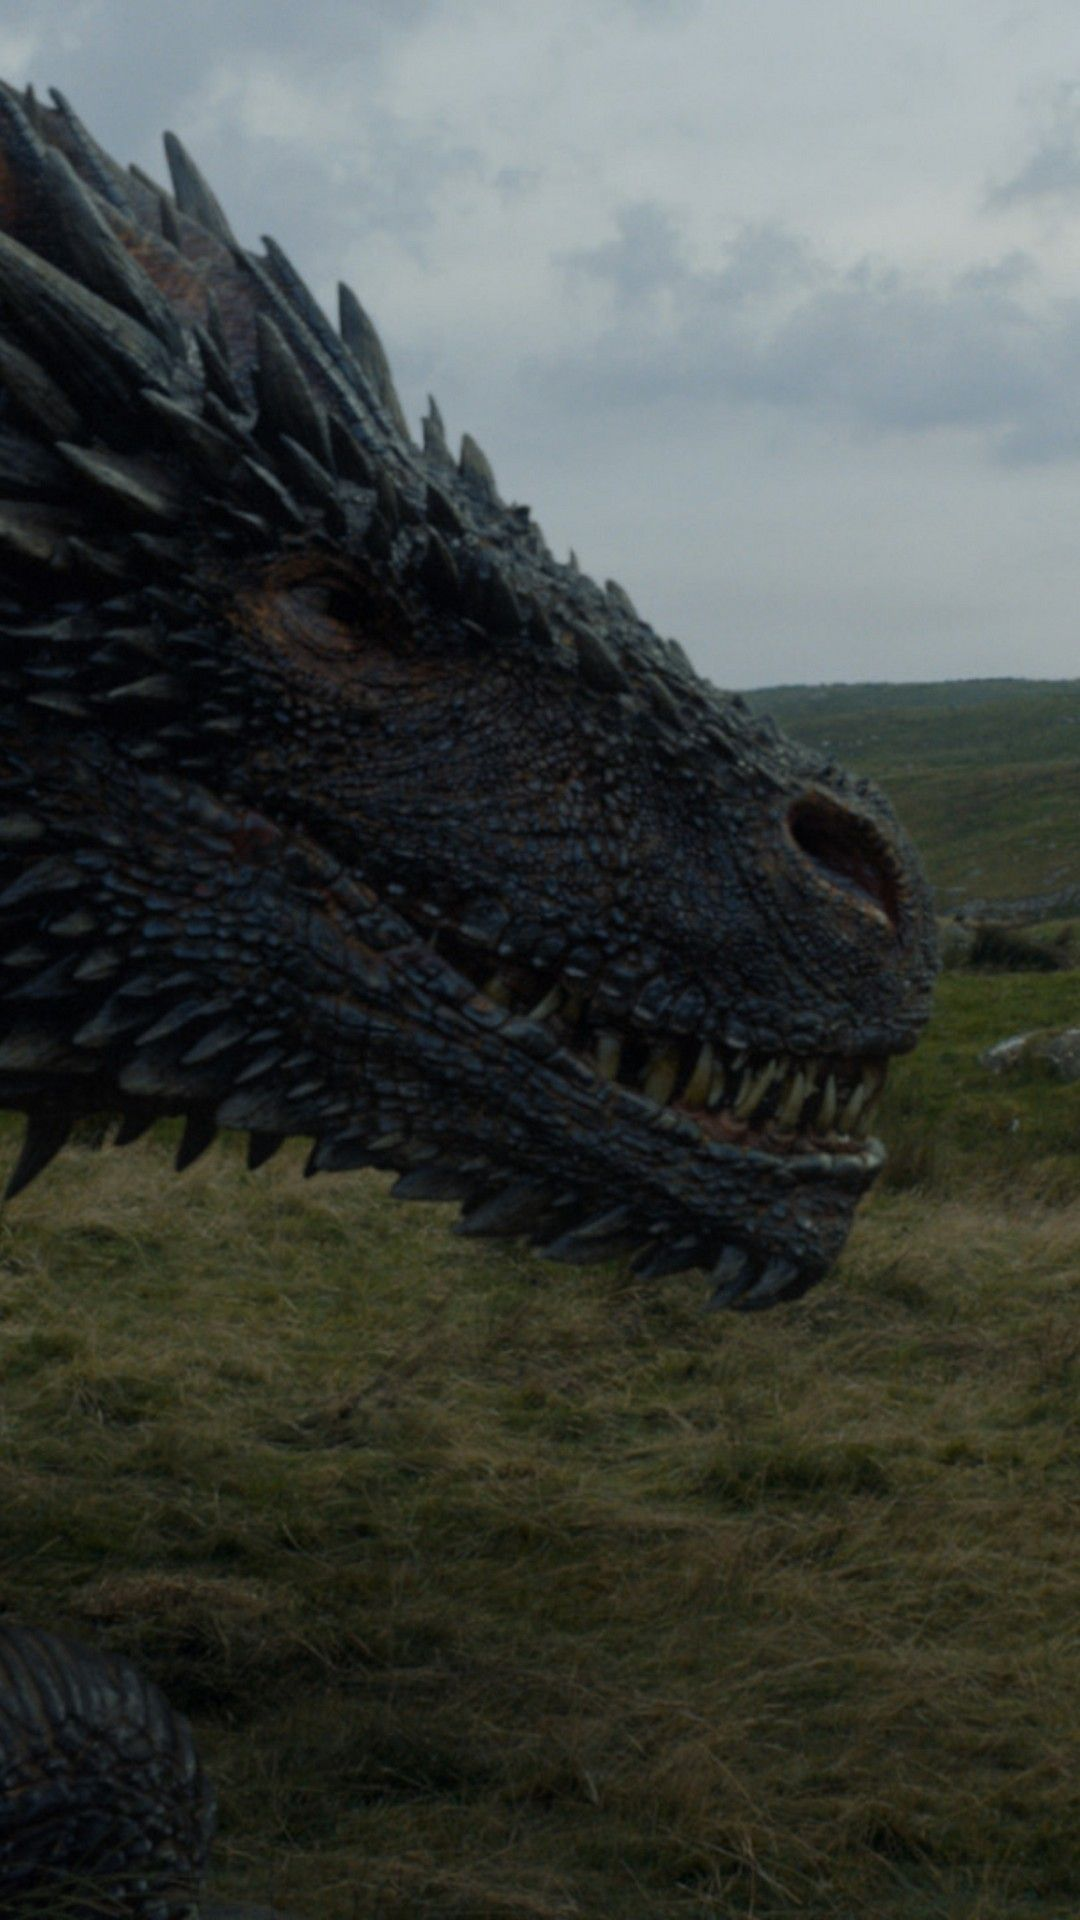 Game Of Thrones Dragons Wallpapers Wallpaper Cave